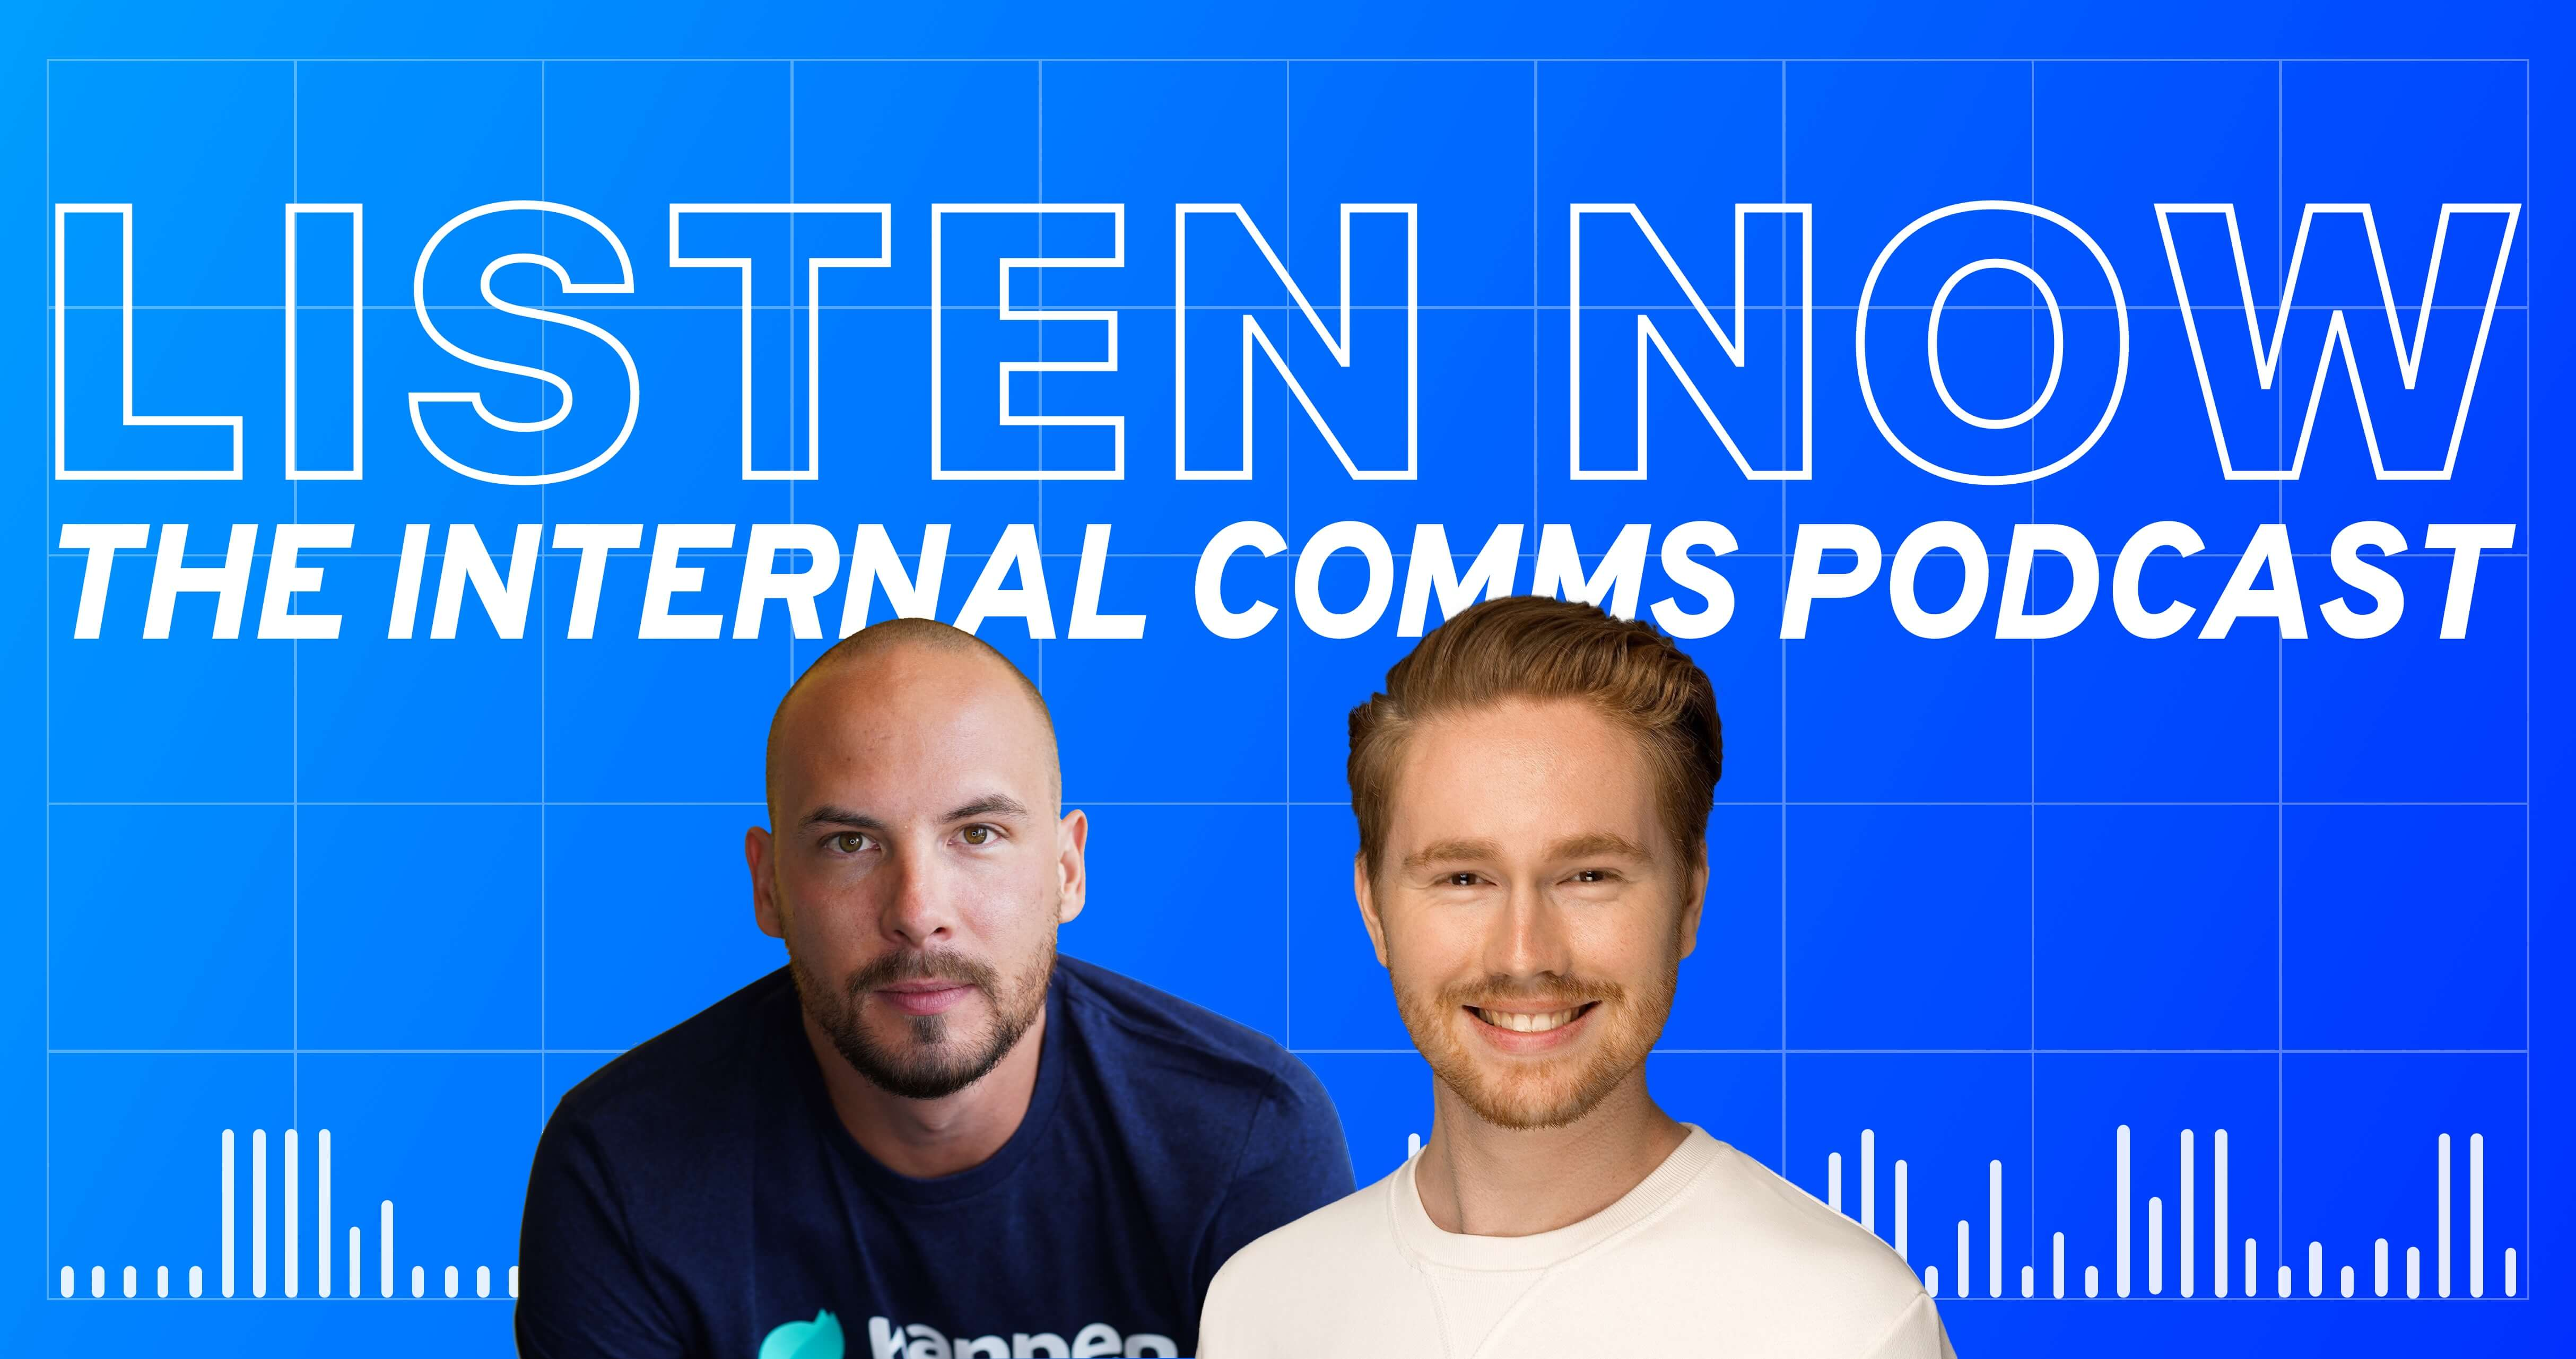 Podcast: Using influencers to bridge Internal and External Comms